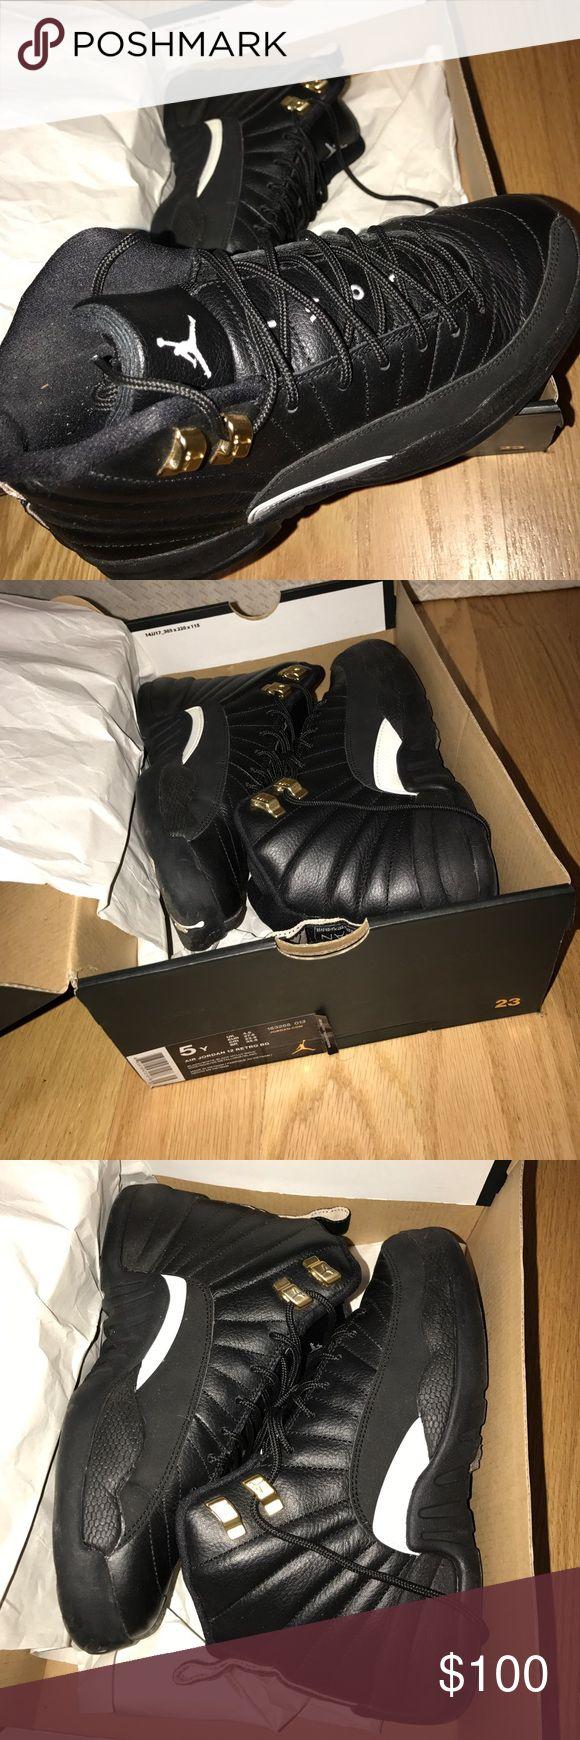 Air Jordan 12 Retro BG Size 5y All black air Jordan 12s size 5y (gradeschool) Air Jordan Shoes Sneakers